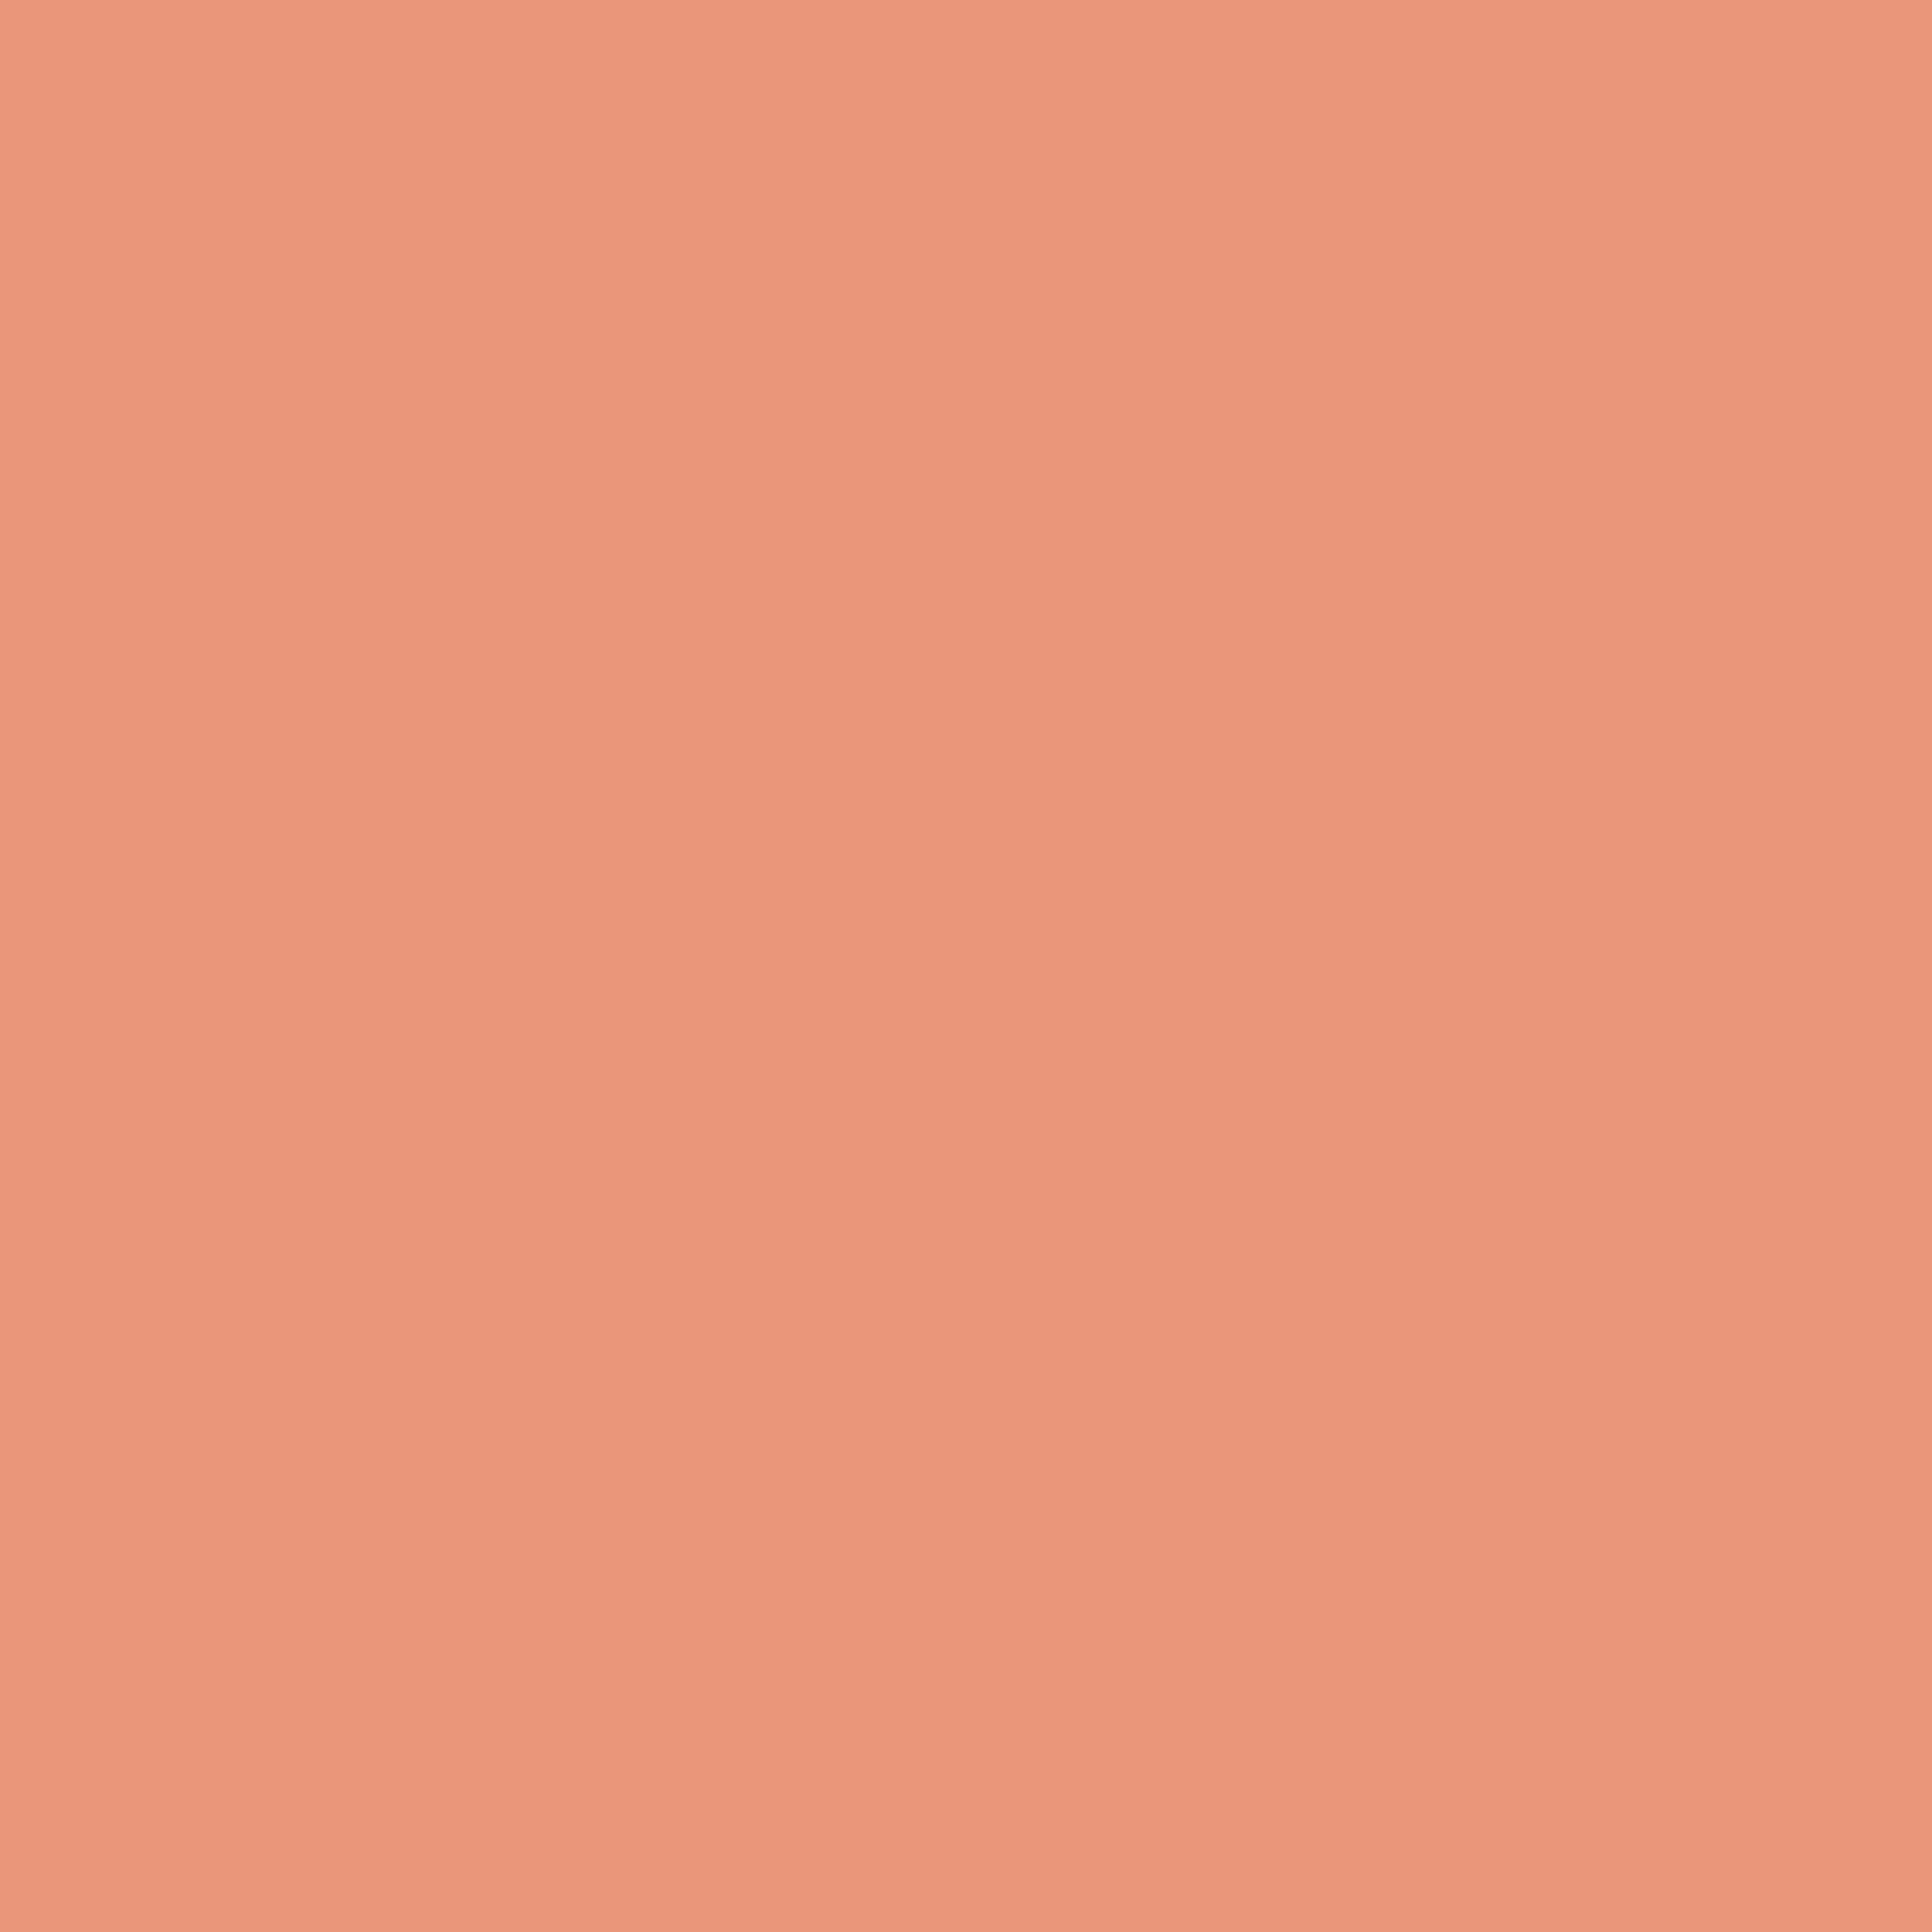 3600x3600 Dark Salmon Solid Color Background